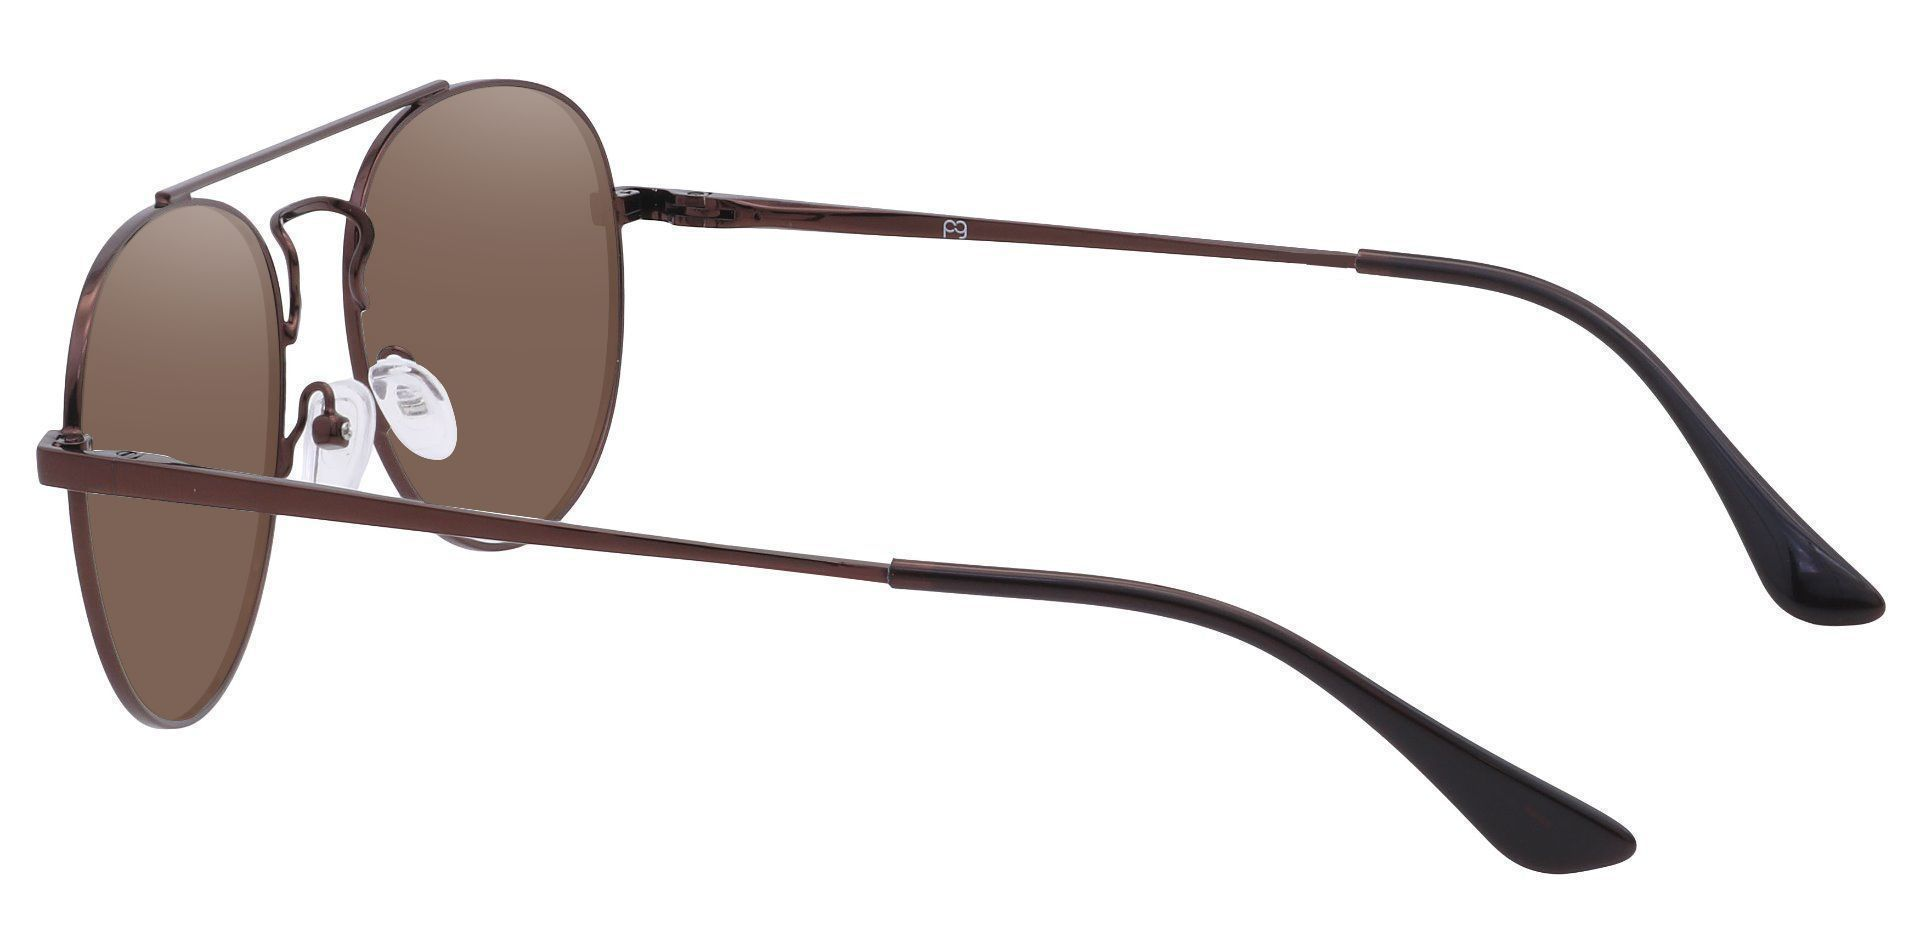 Trapp Aviator Lined Bifocal Sunglasses - Brown Frame With Brown Lenses